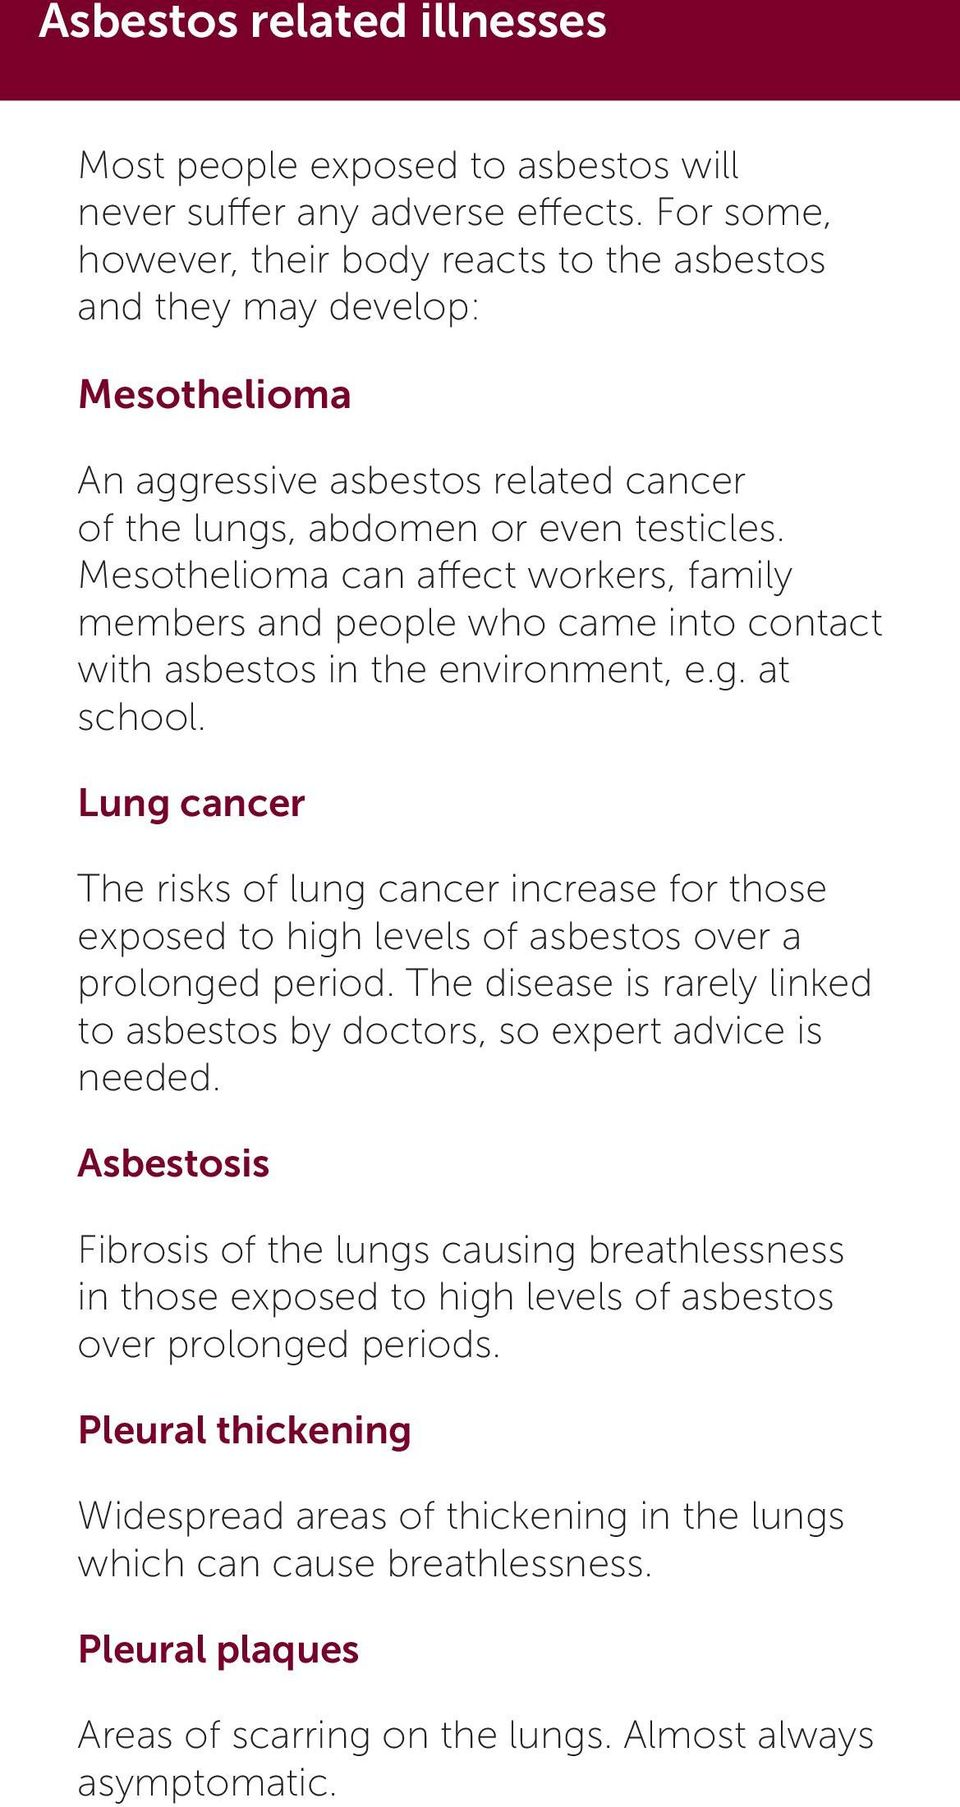 Mesothelioma can affect workers, family members and people who came into contact with asbestos in the environment, e.g. at school.